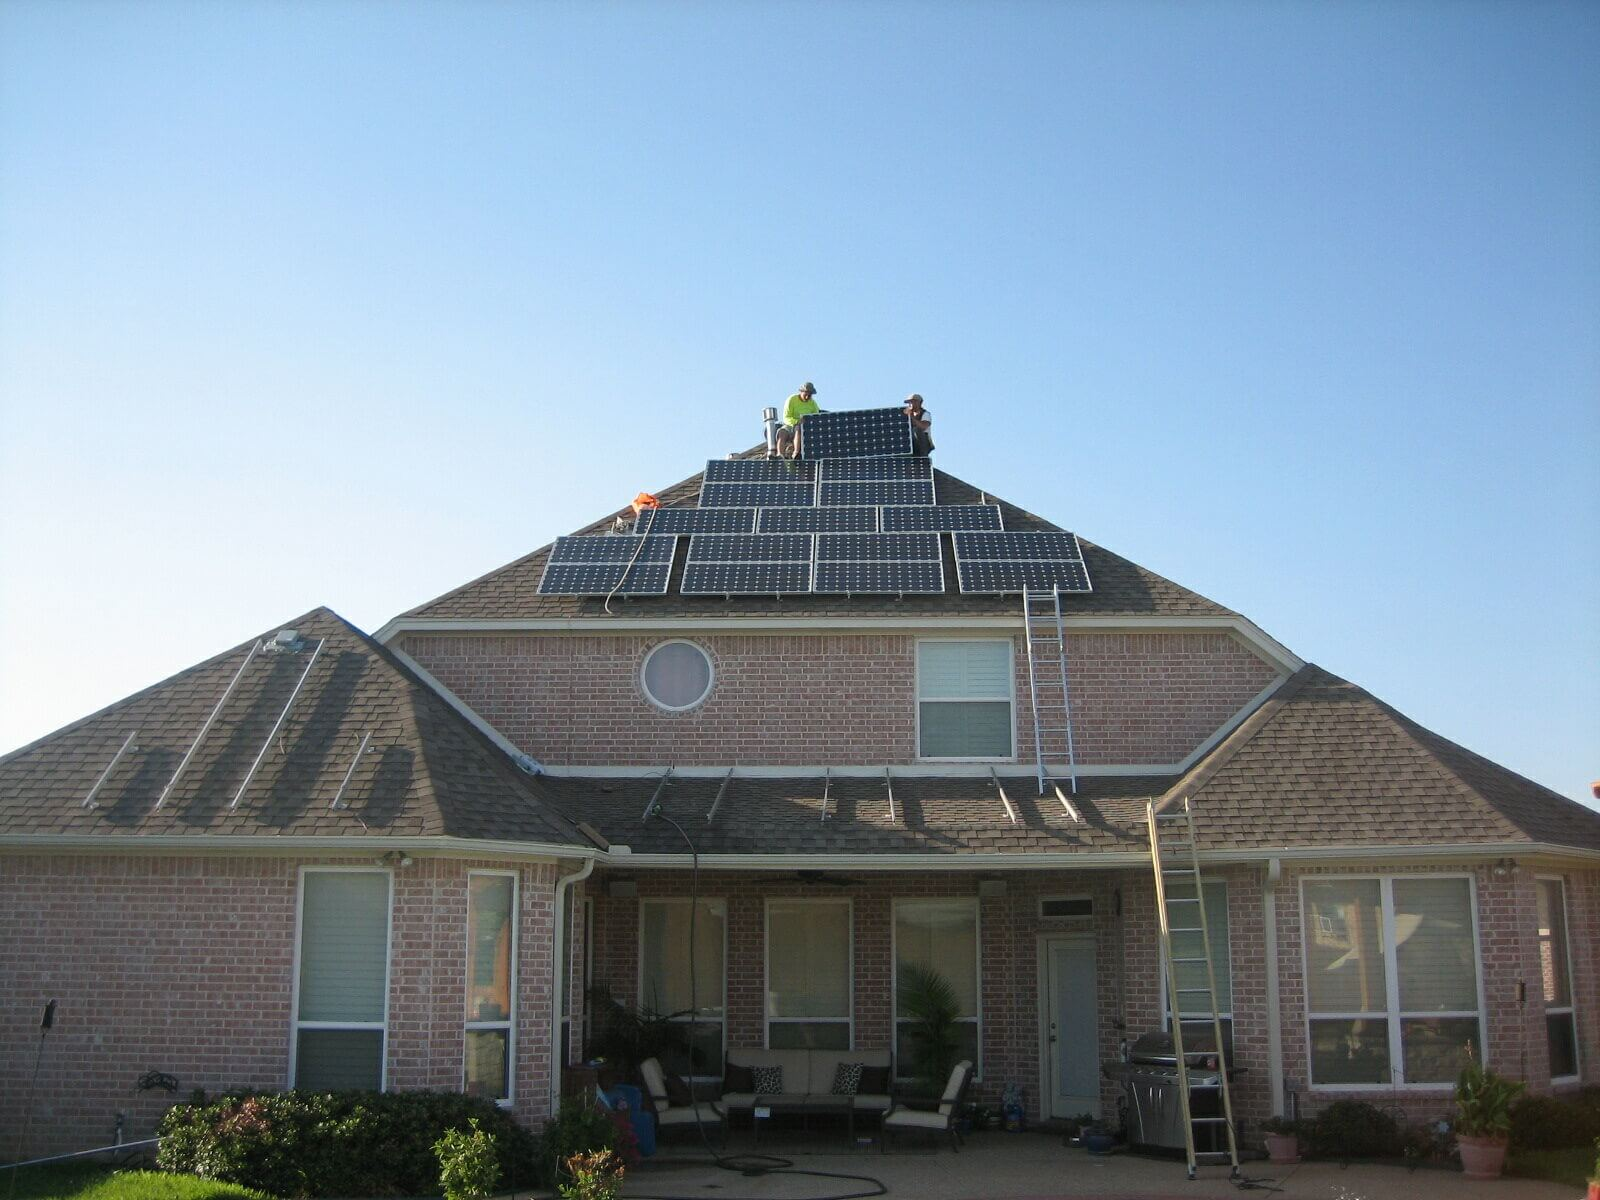 Workers doing maintenance on roof solar panels